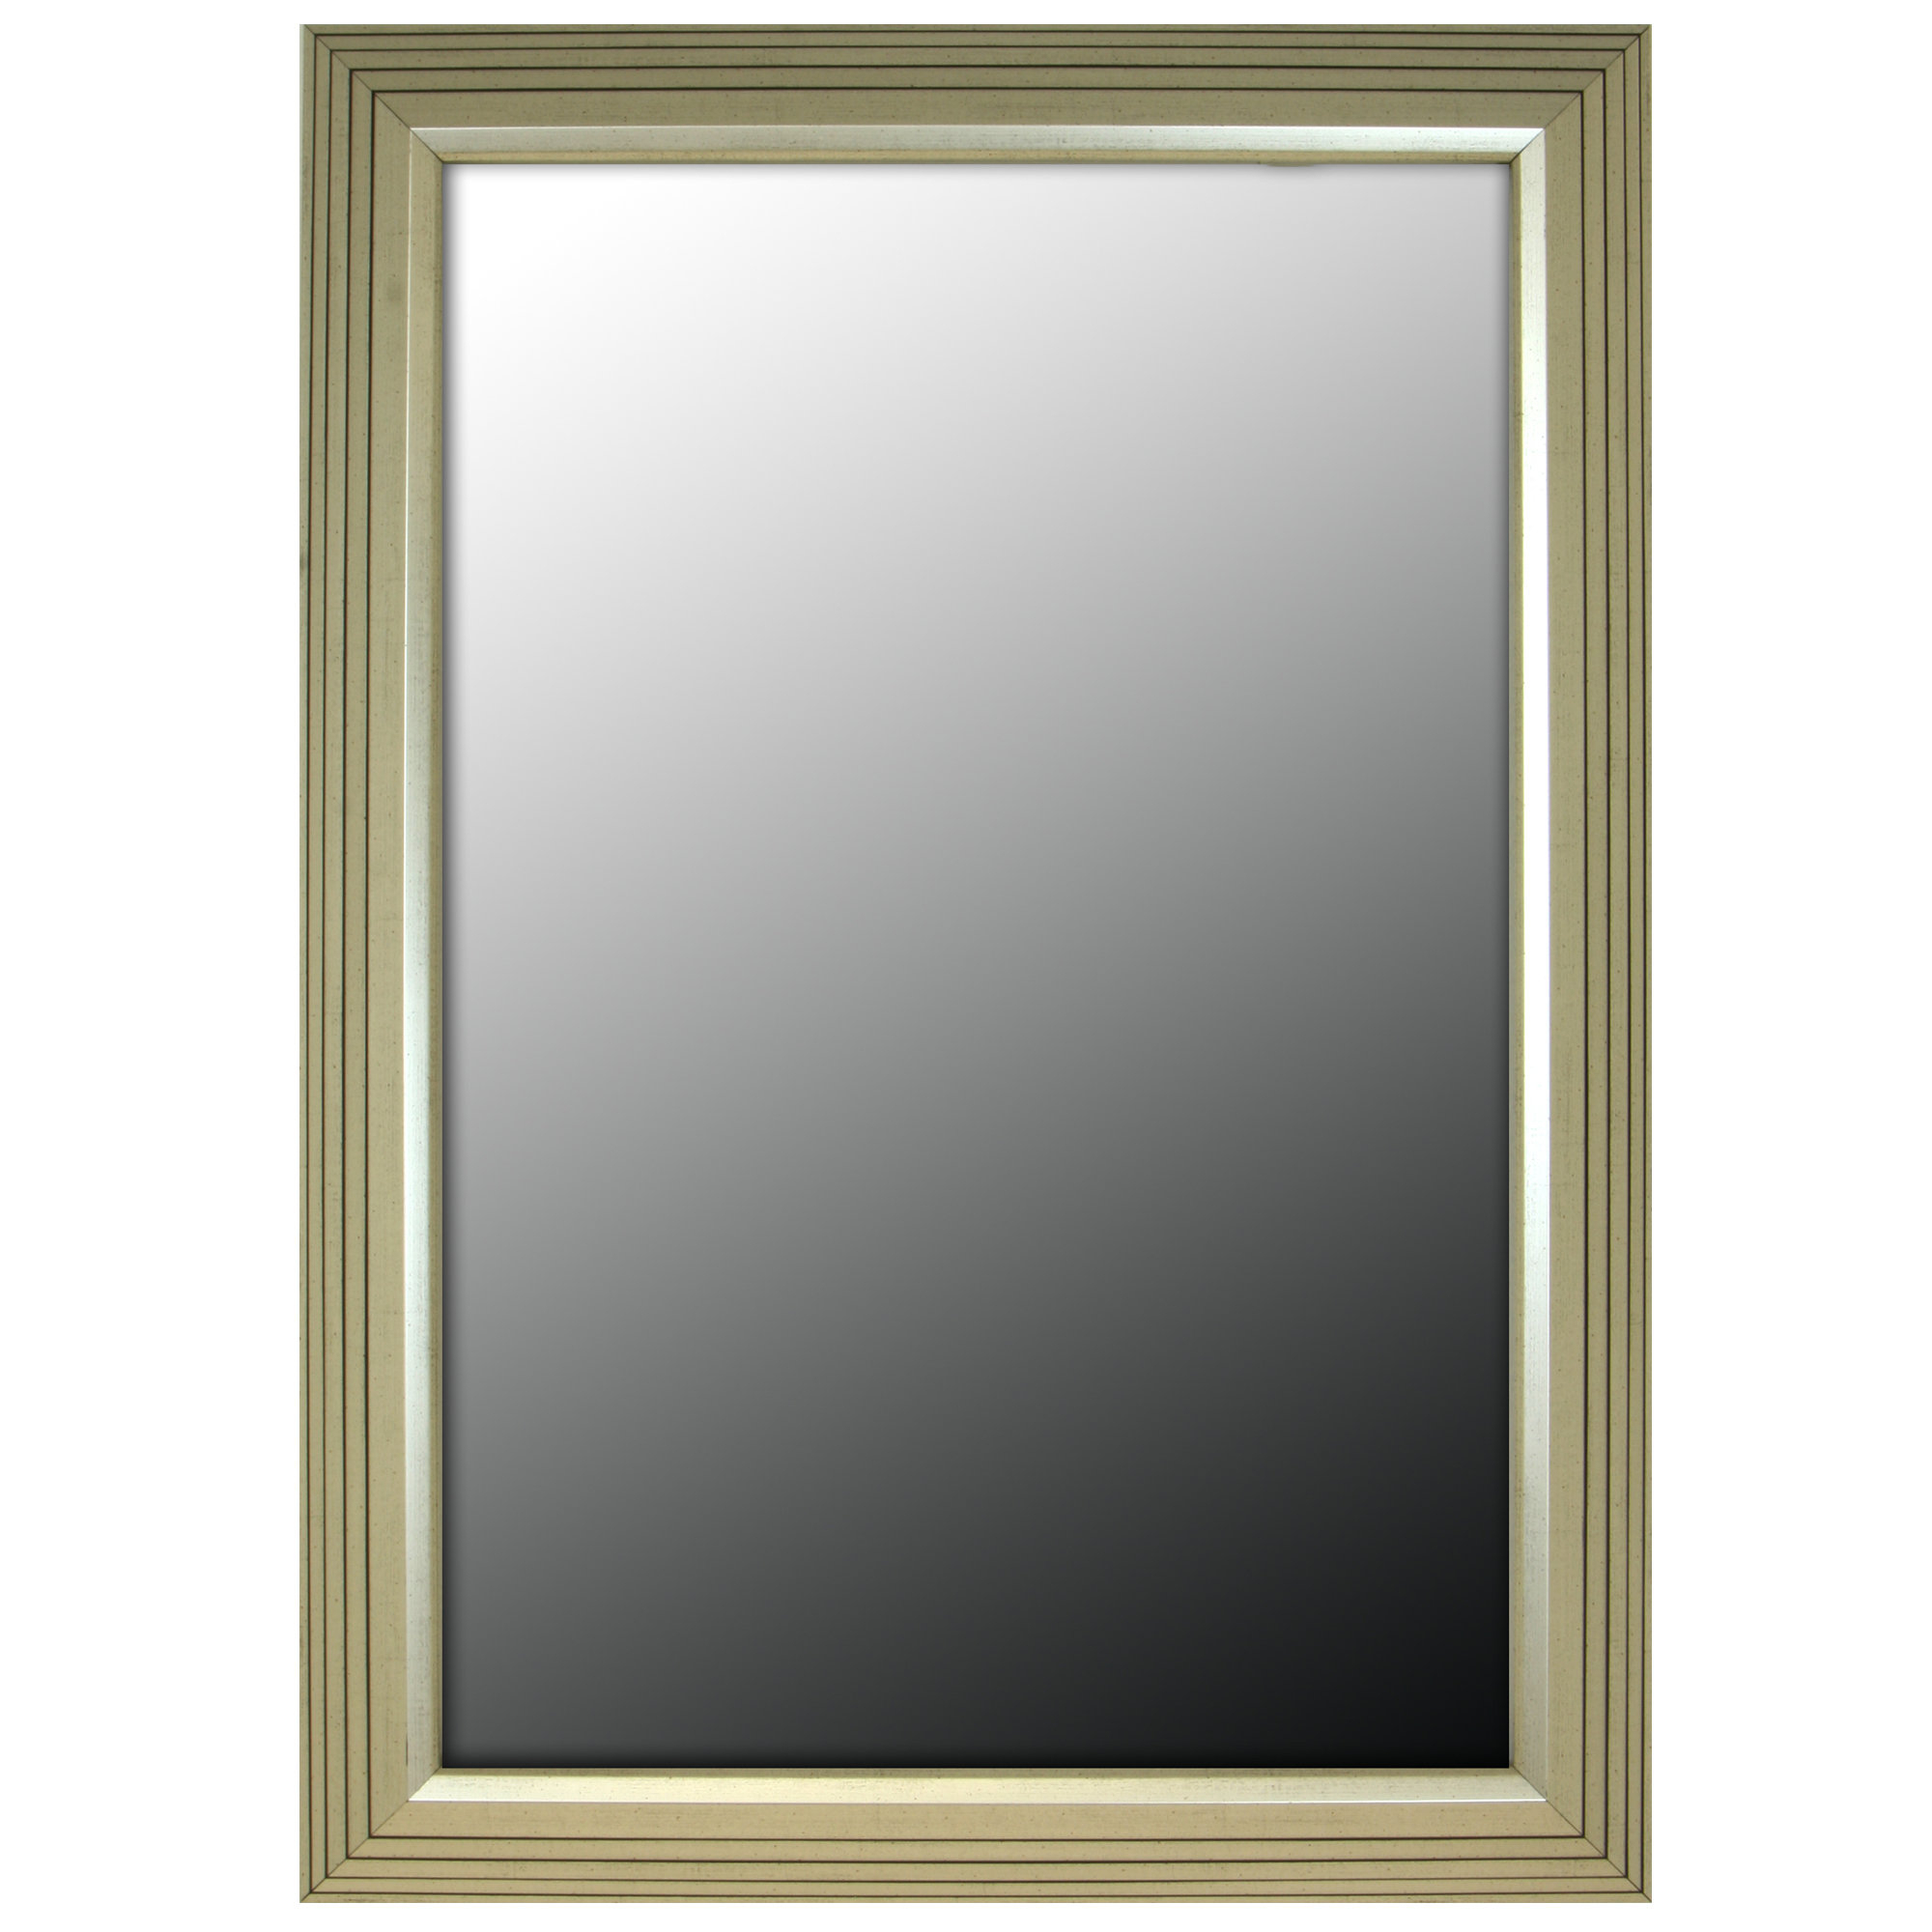 2019 Greenough Stepped Vintage Silver Petite Traditional Wall Mirror In Vintage Wall Mirrors (View 19 of 20)